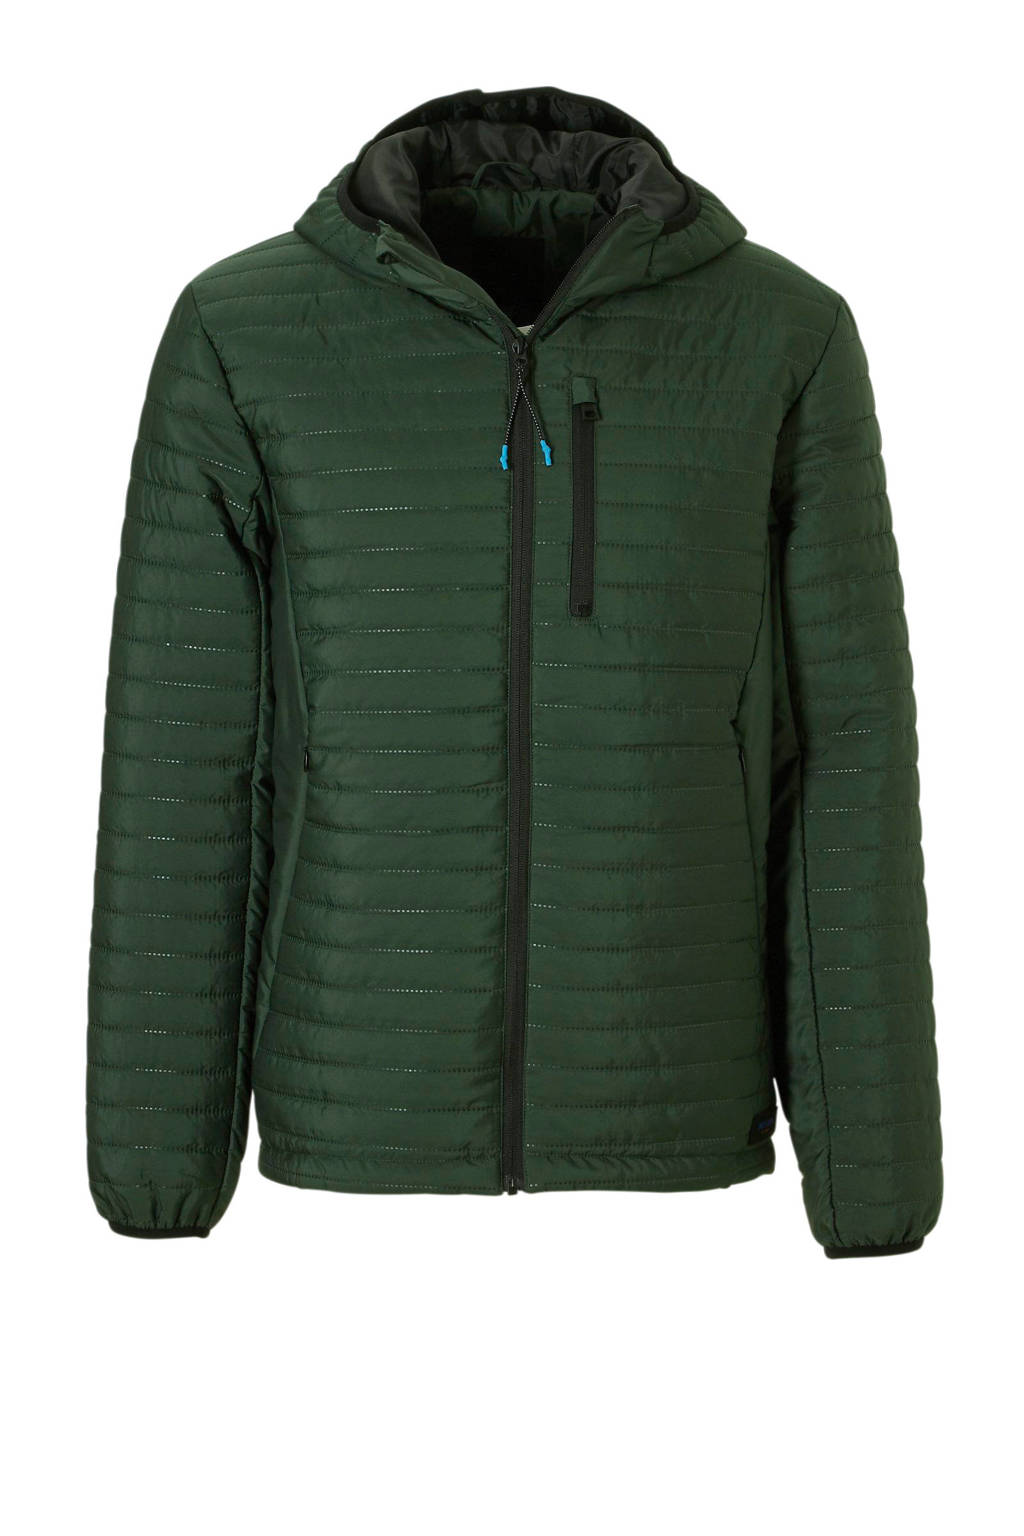 Only & Sons jas, Groen